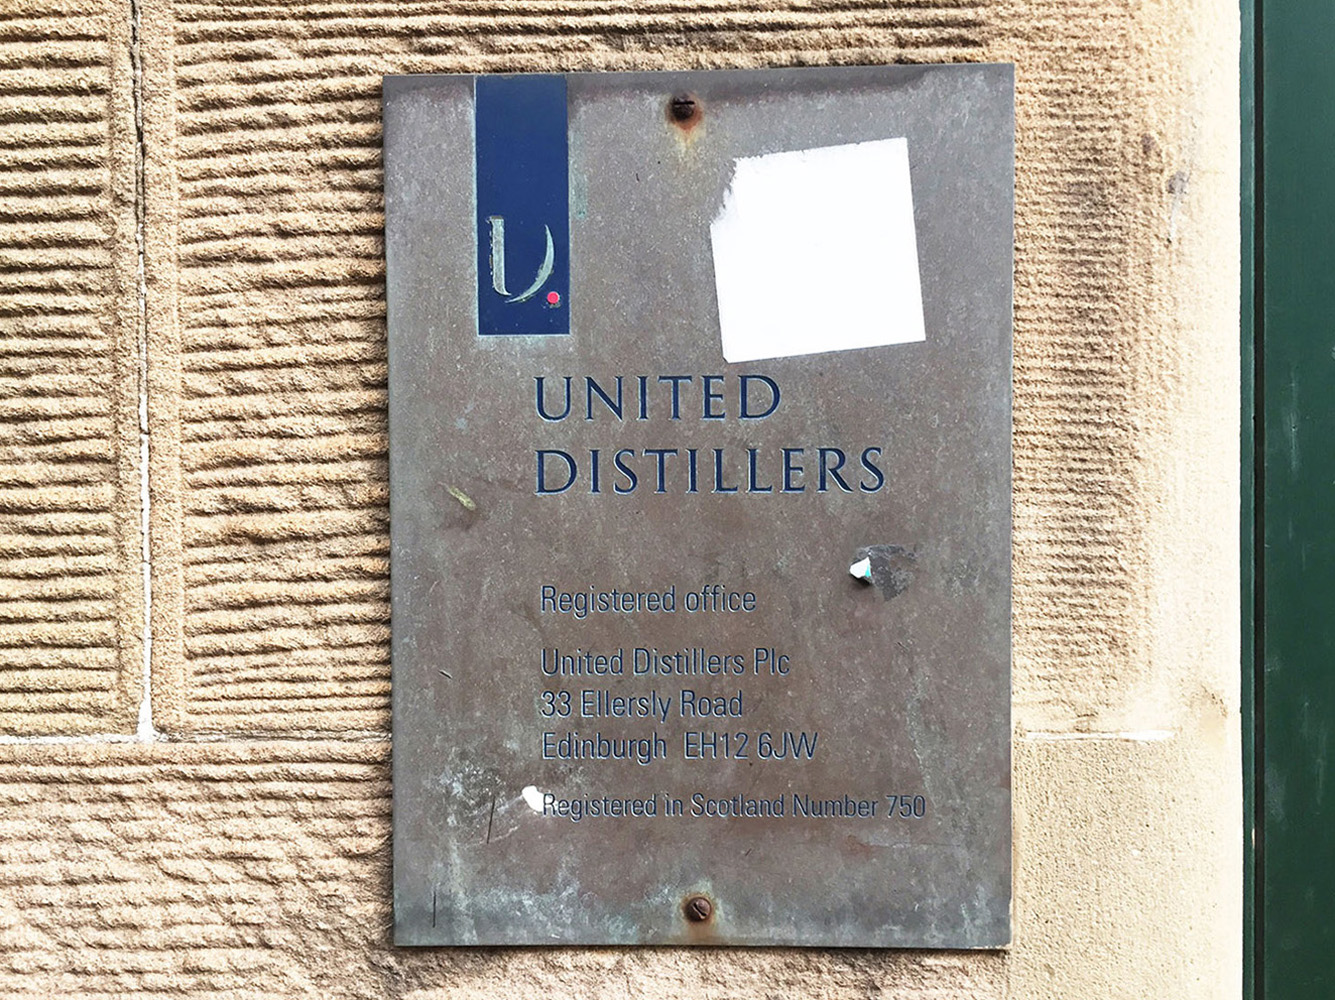 Bonnington's Distillery - In Leith itself, Bonnington's distillery (also known as The Leith Distillery) was founded by Mr Balenie and Mr Kemp in 1798 and then purchased by John Haig in 1804. Bonnington's became a major grain distillery, and one of the first companies to use a Coffey still in 1835.The Haig Distillery merged with five other distilleries to form The Distillers Company.